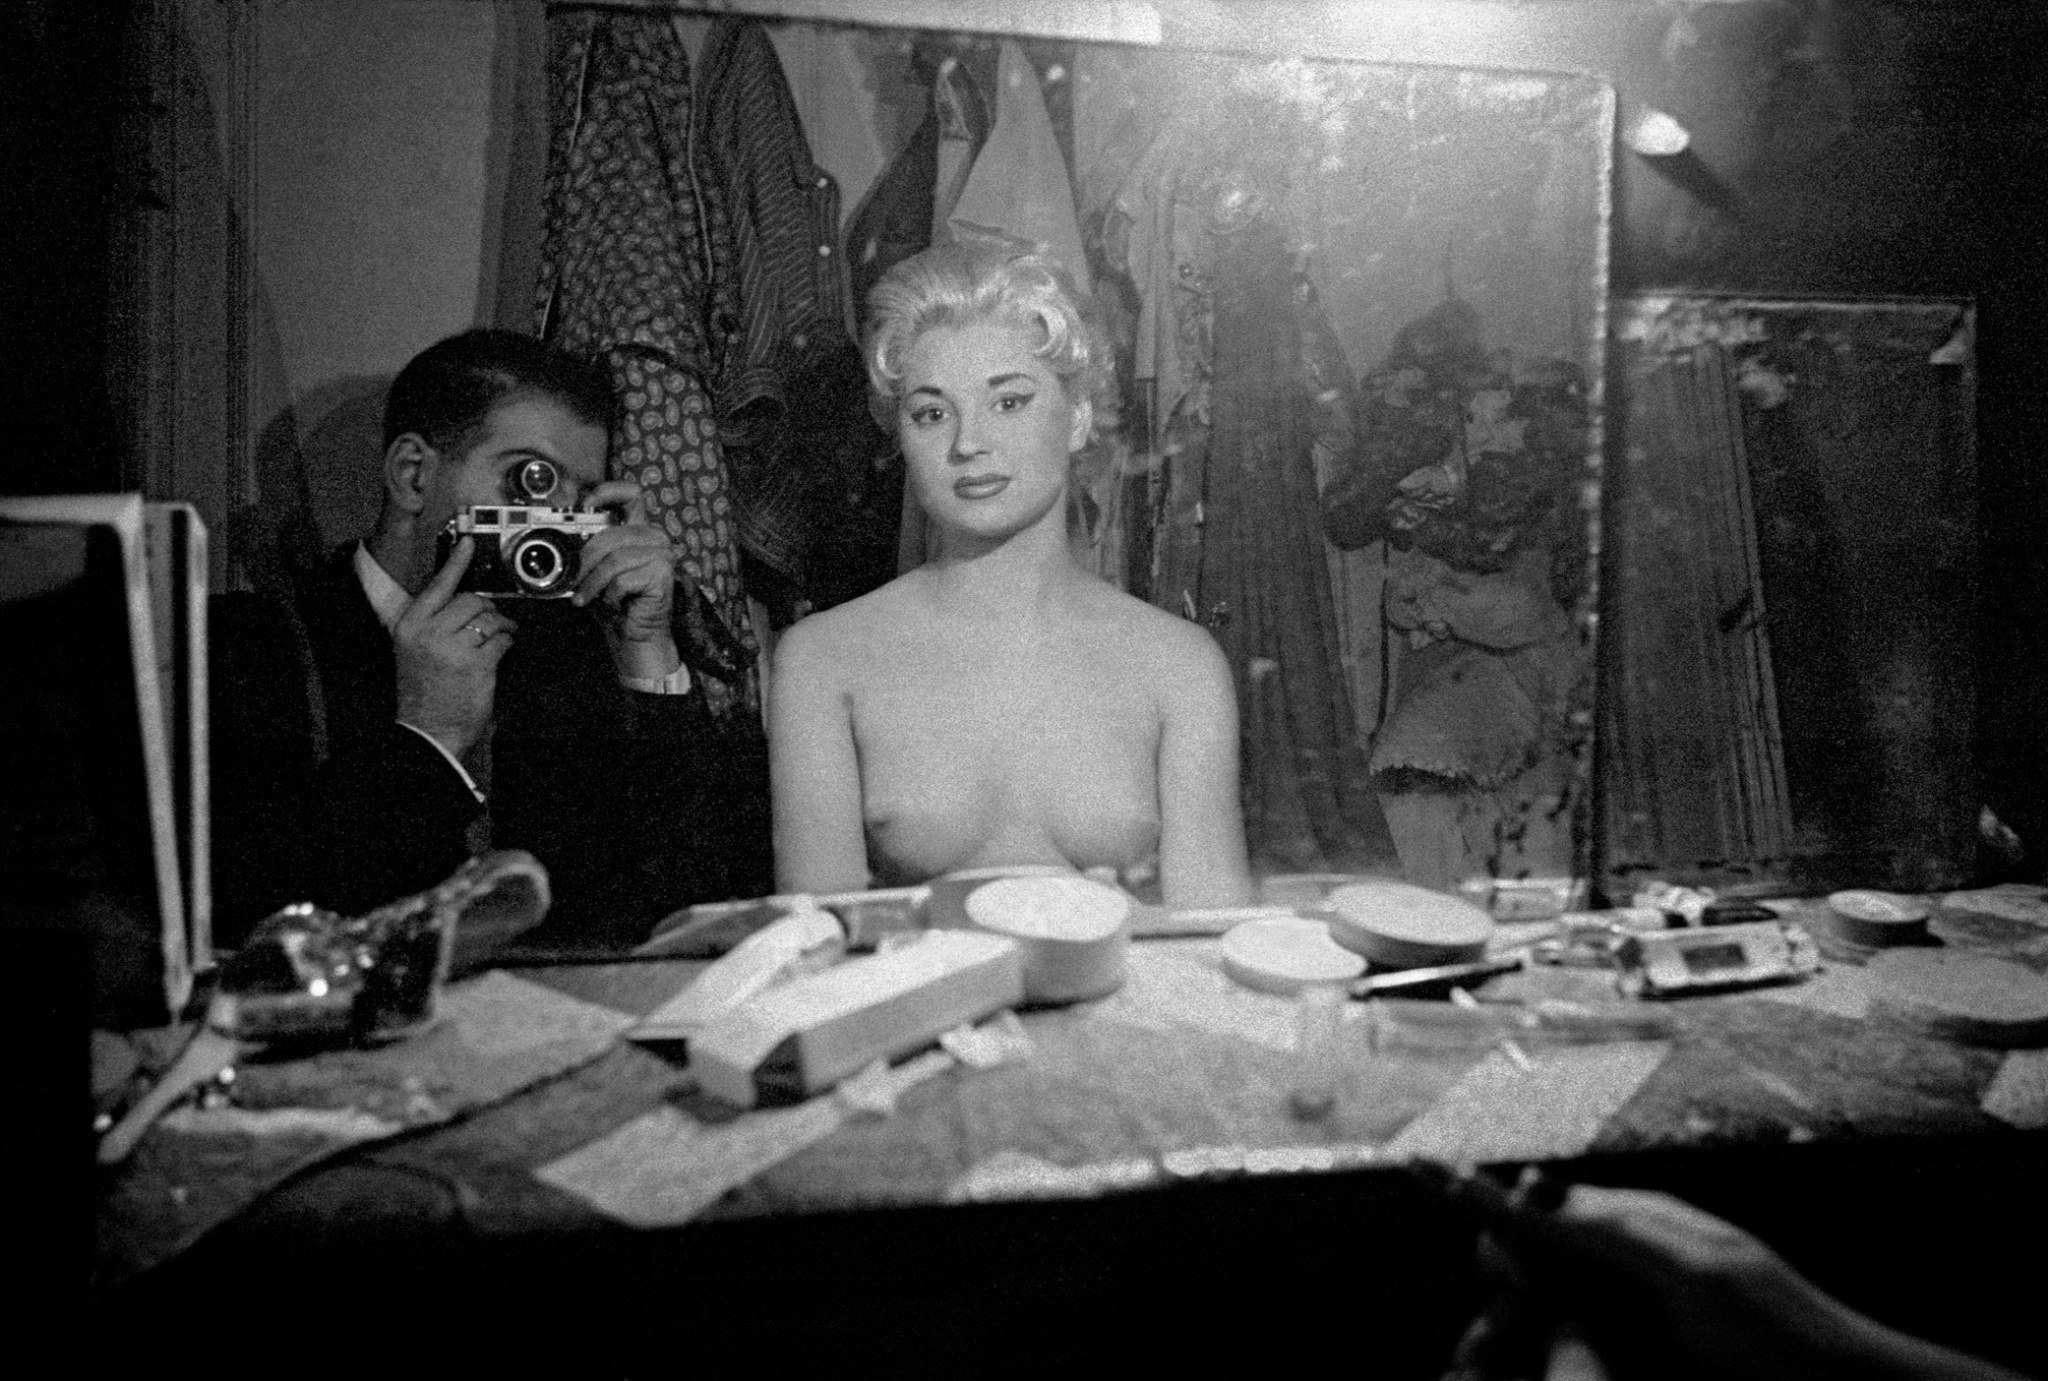 Frank Horvat 1956, Paris, Le Sphynx (c), self-portrait with stripper